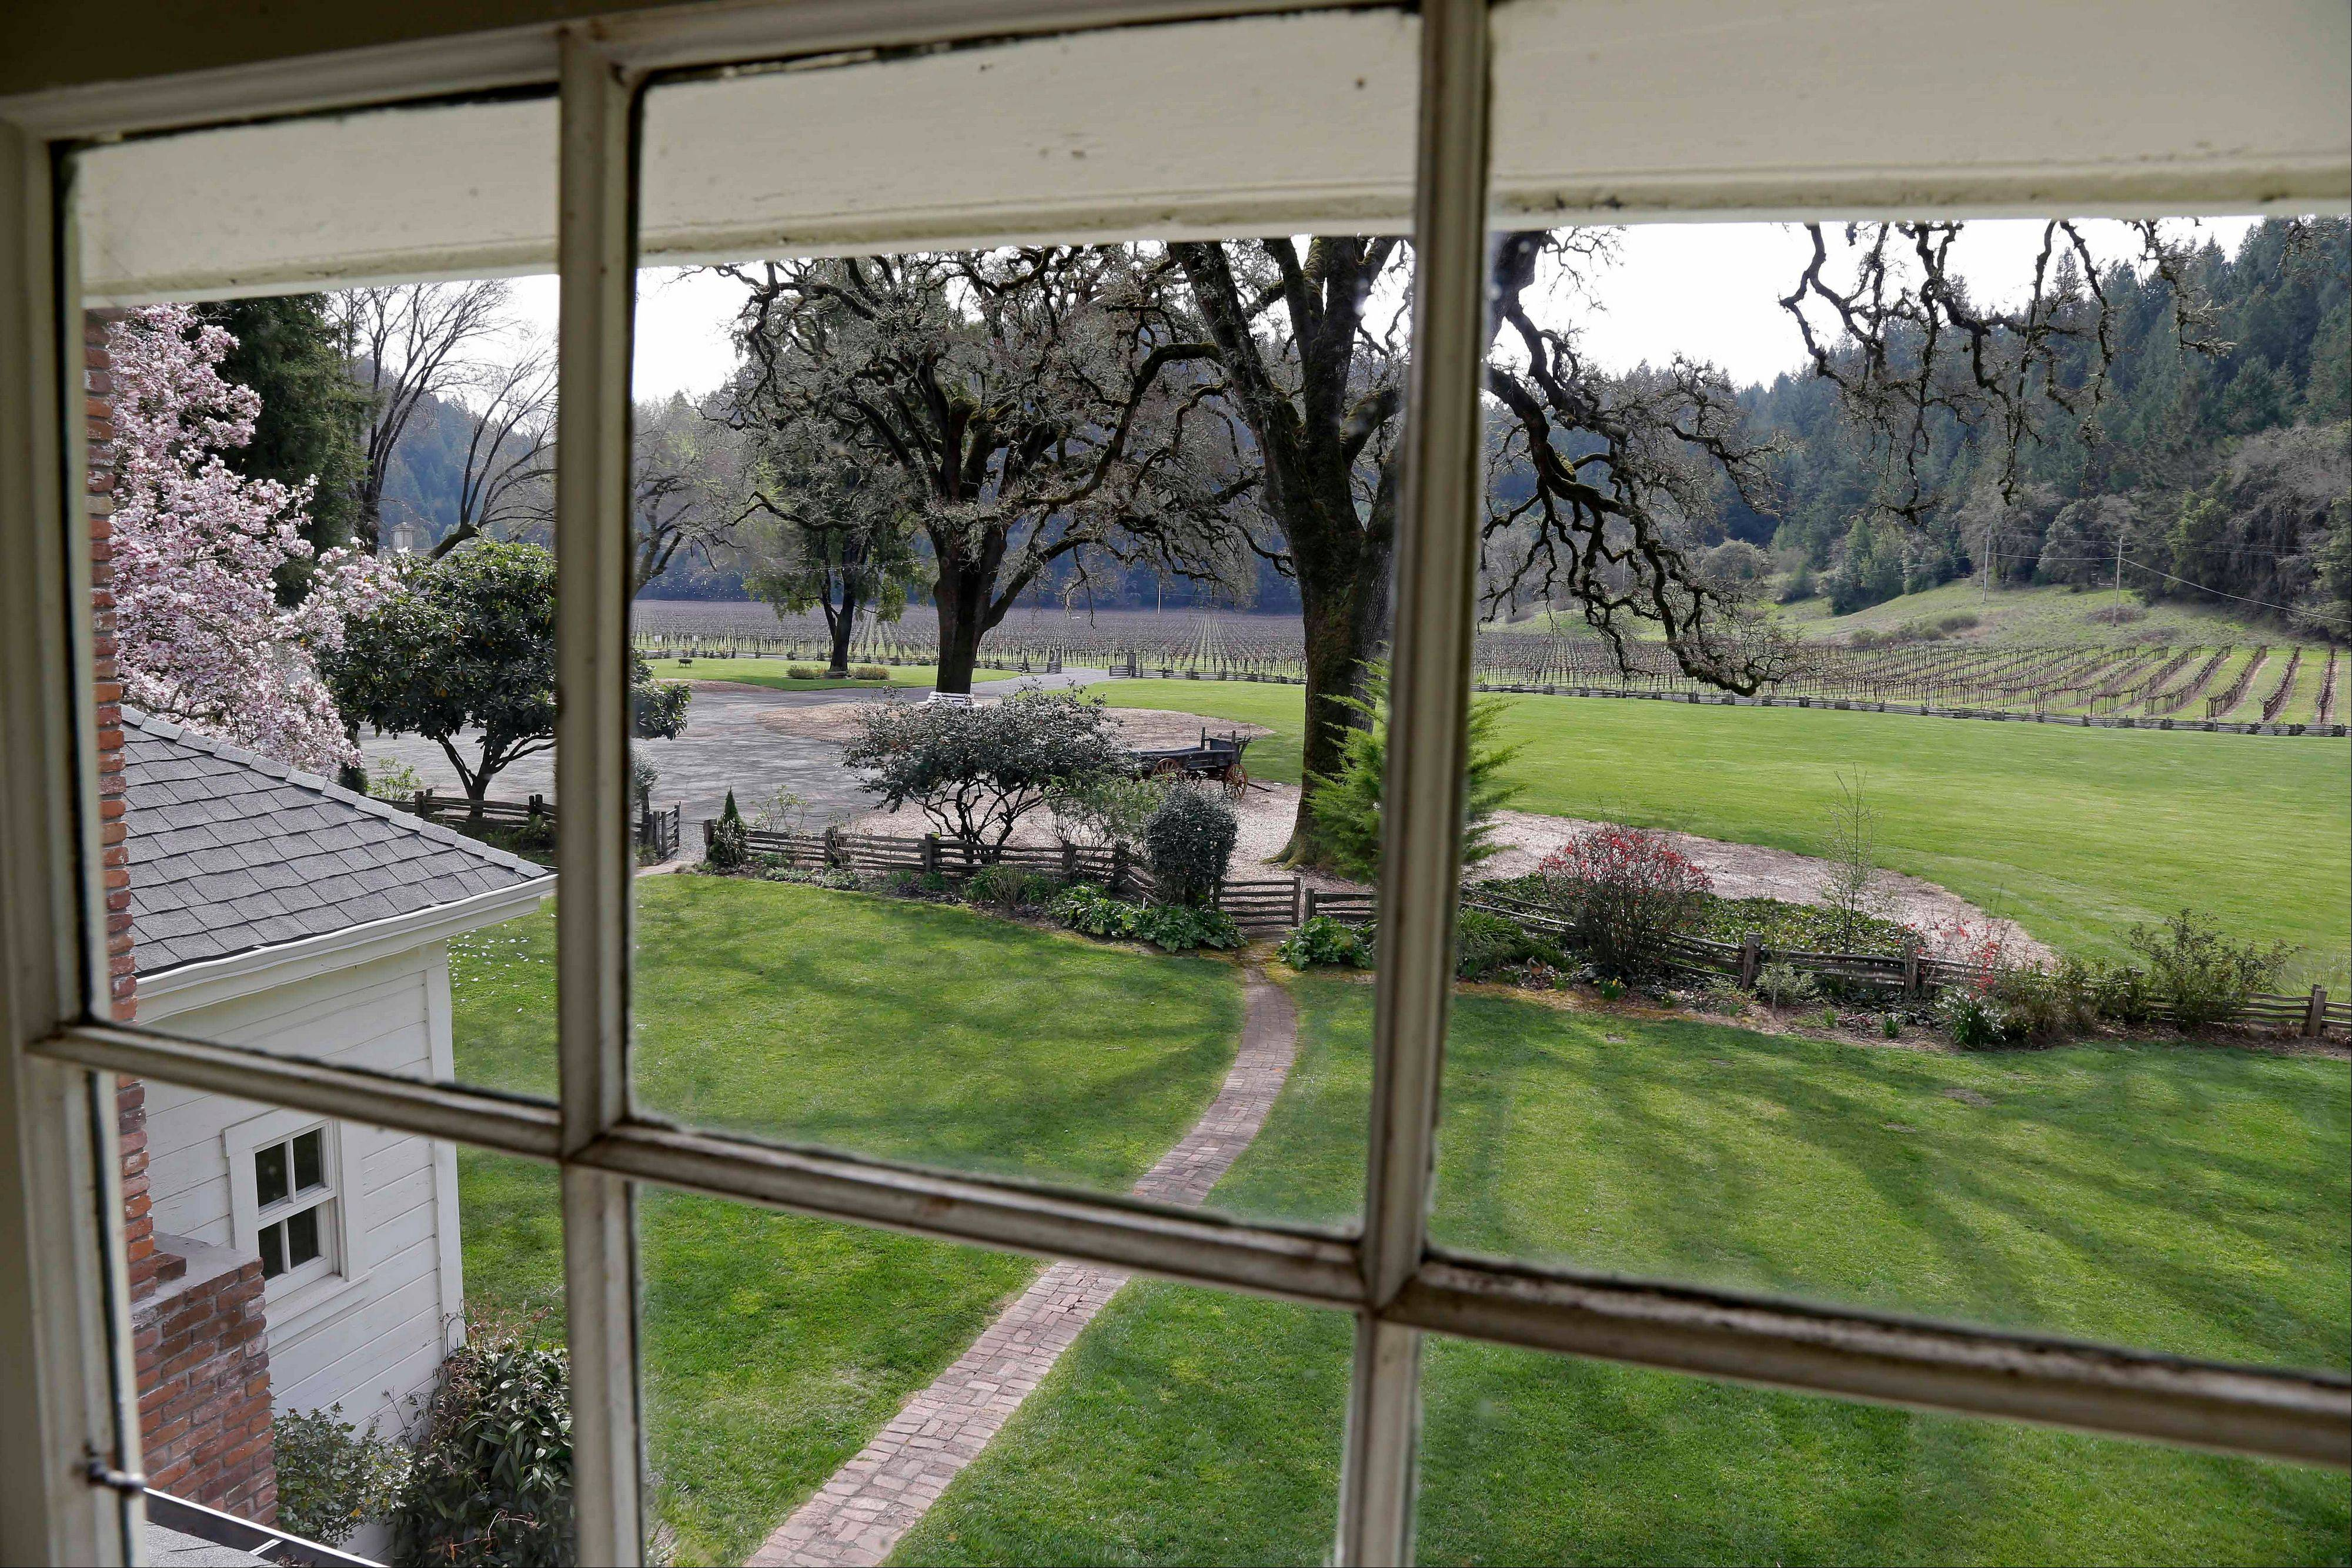 A view of vineyards at the MacMurray Ranch is seen from an upstairs window in actor Fred MacMurray's home in Healdsburg, Calif.